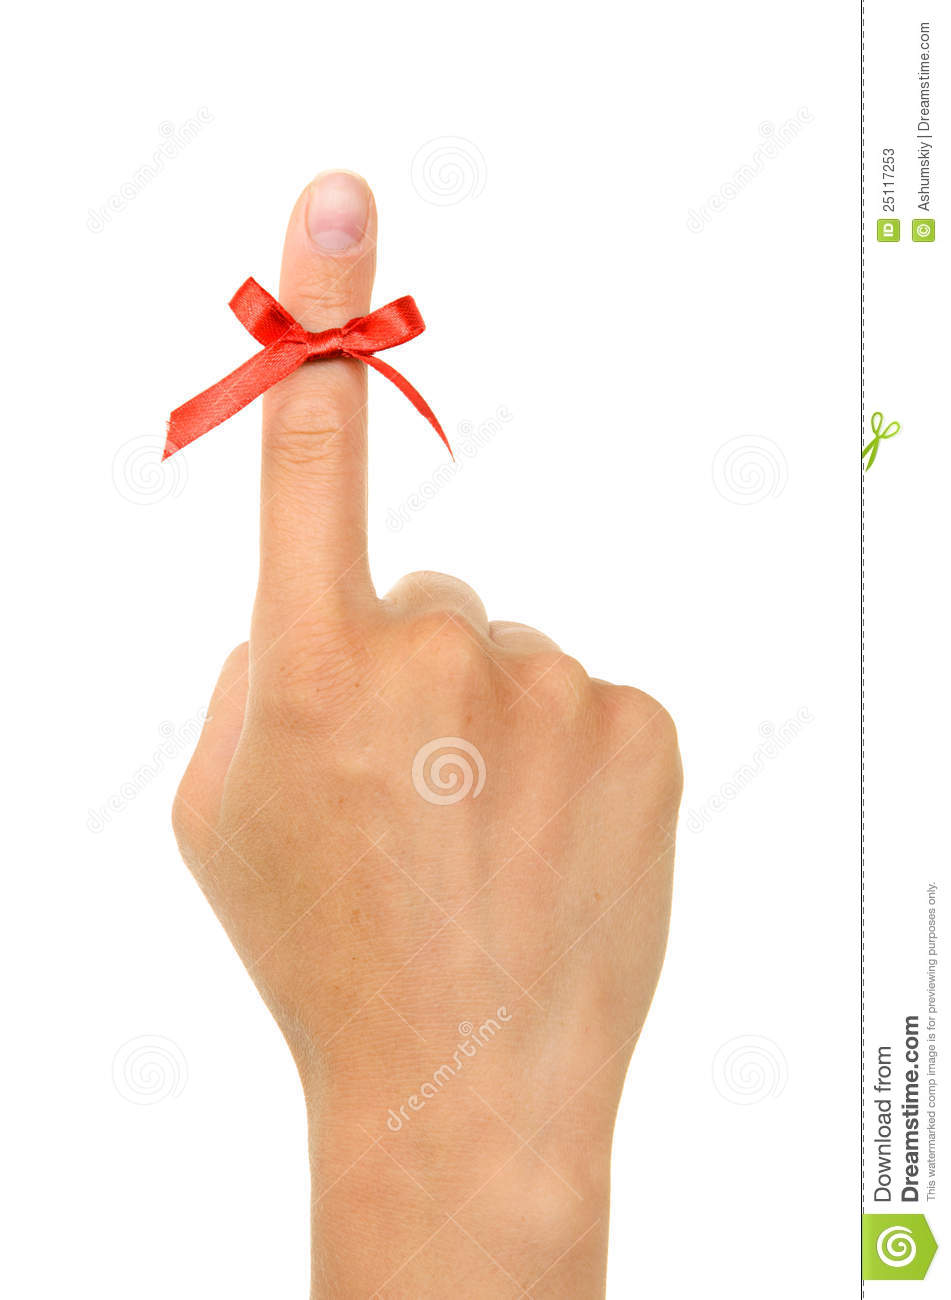 Red string tied around finger as a reminder stock photos image